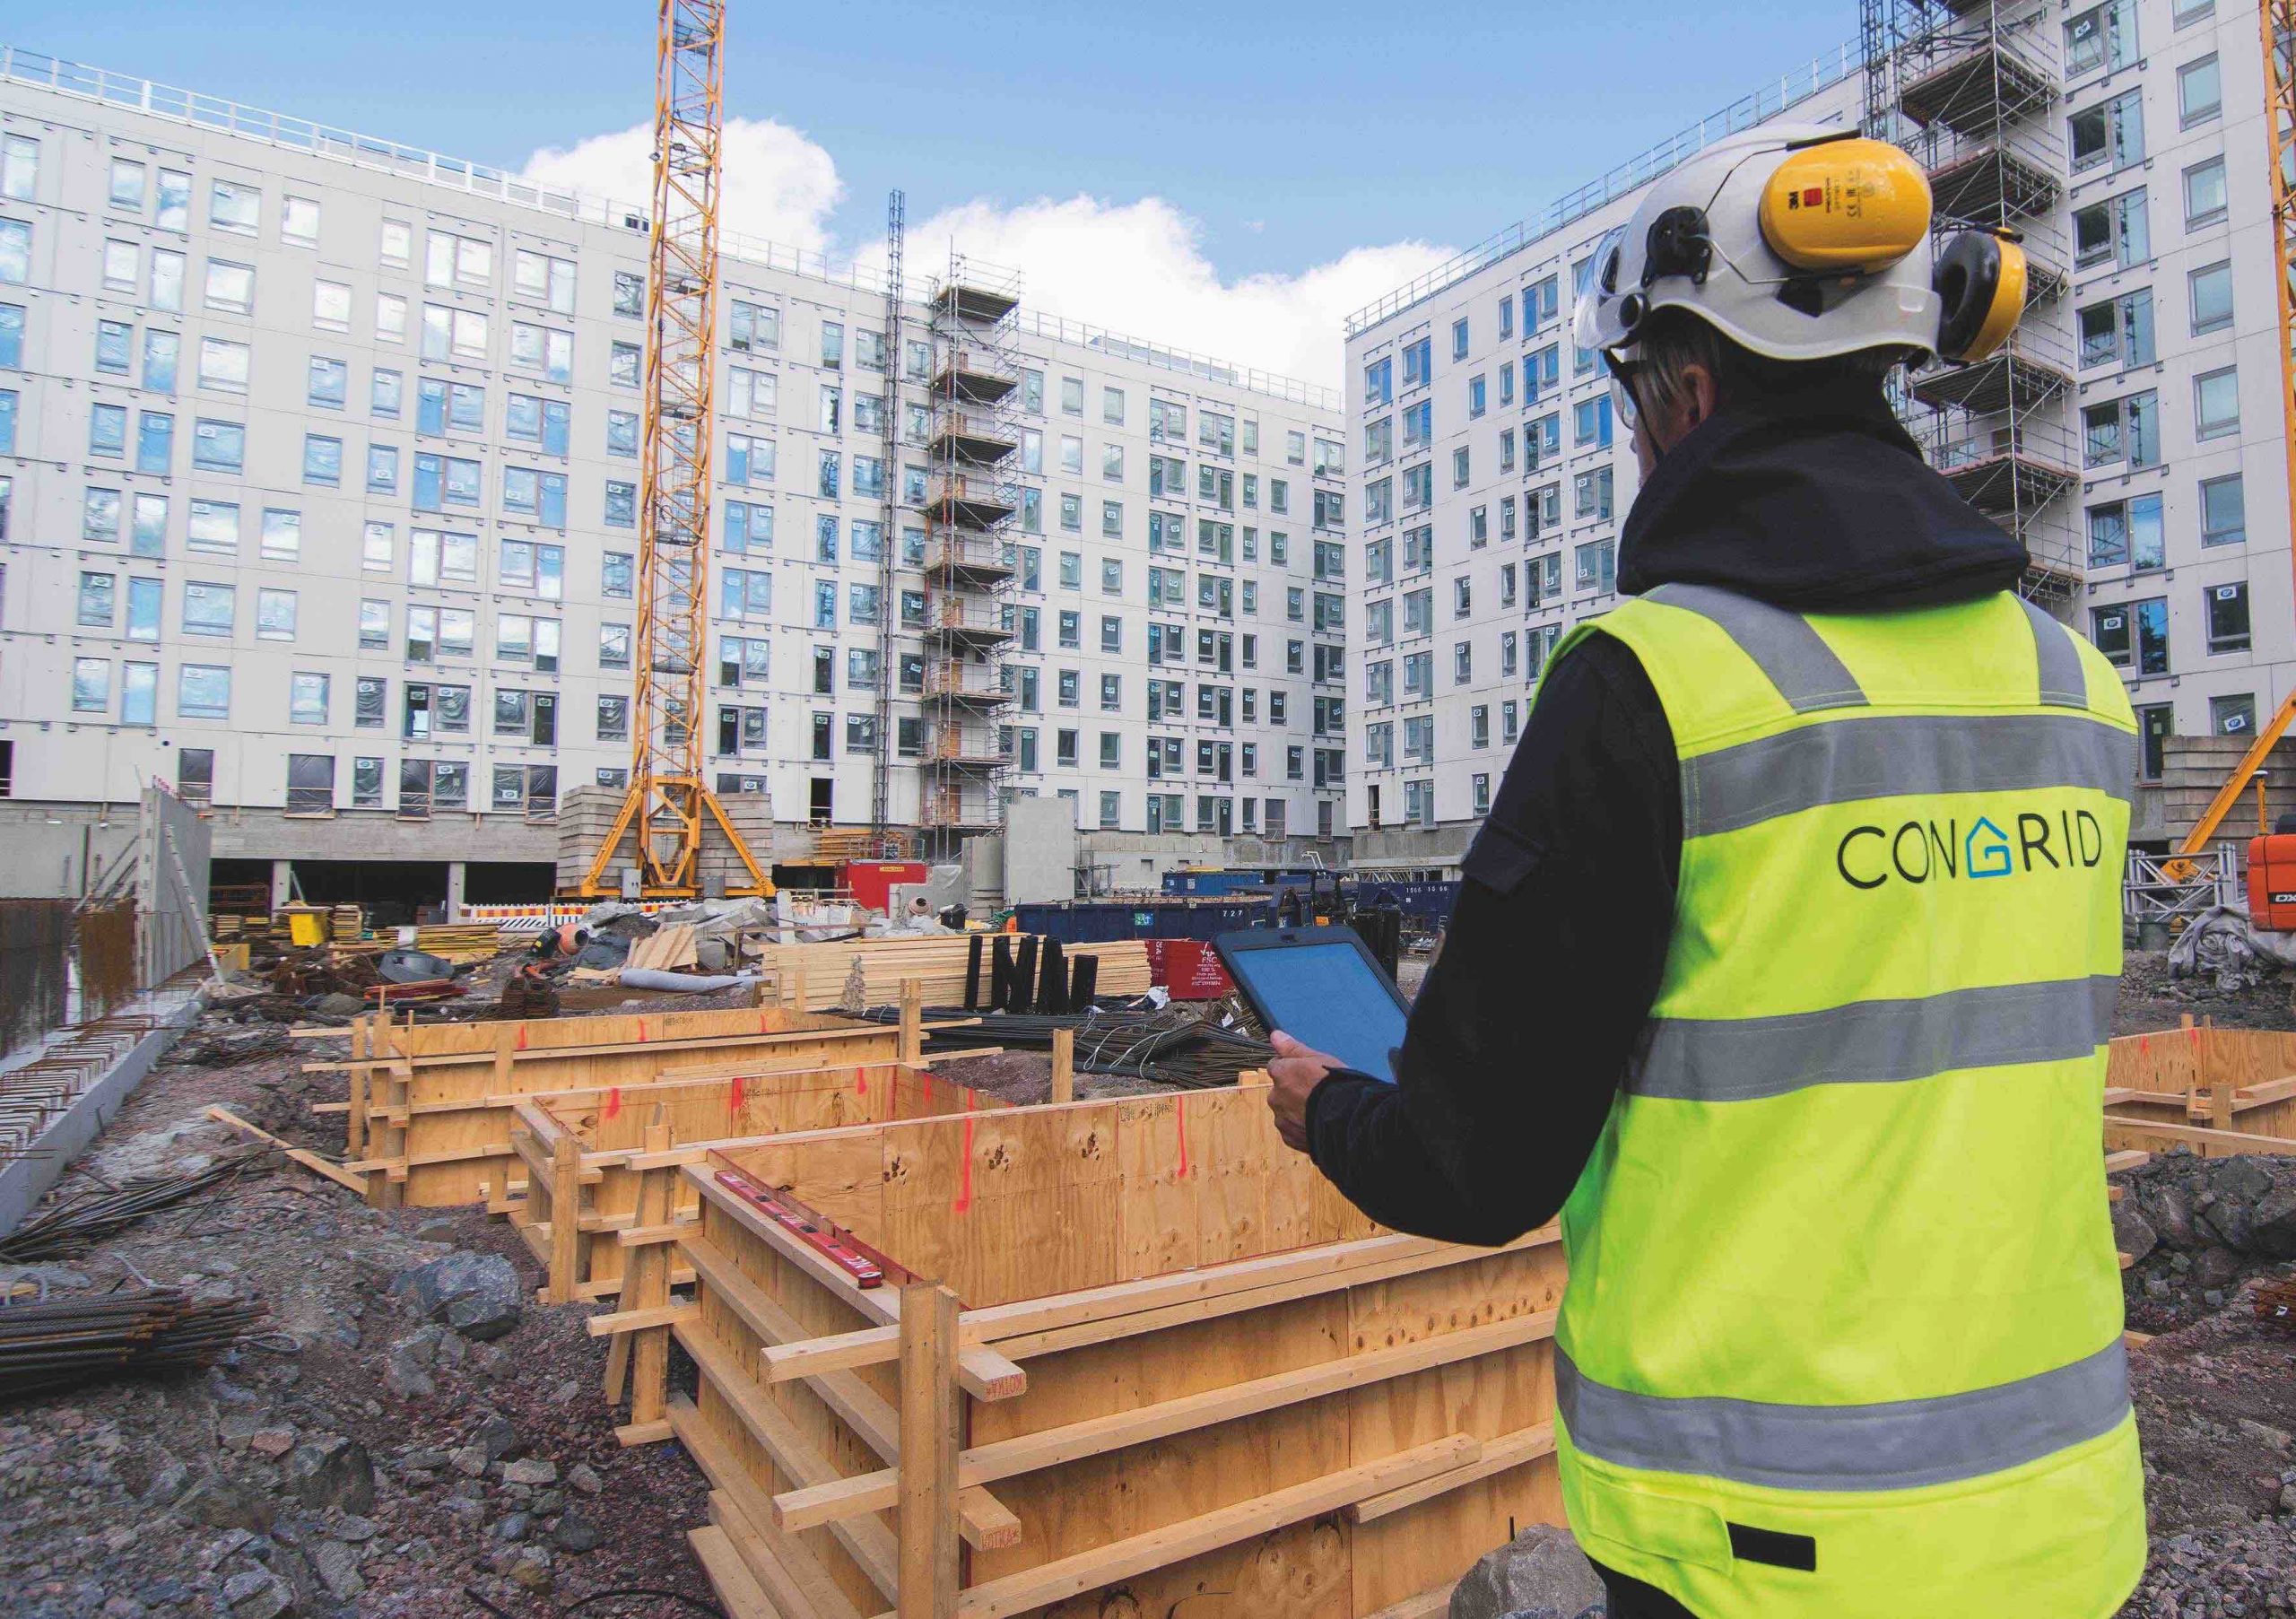 Congrid launches in the UK offering Finnish safety and quality expertise